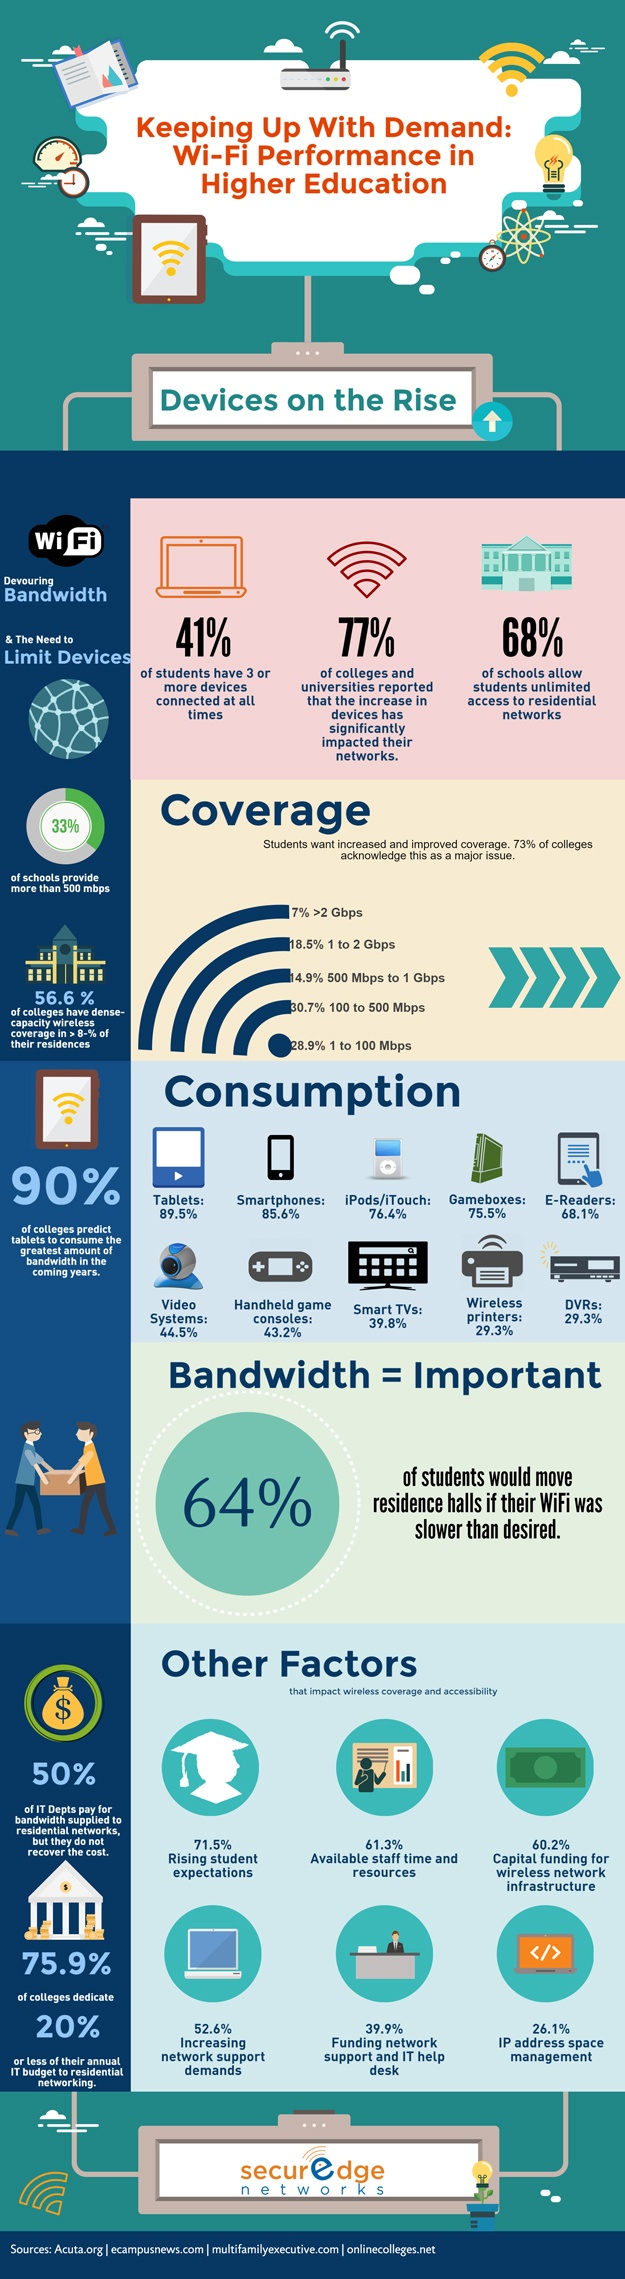 wifi-performance-in-higher-education-campus-wifi-networks-infographic.jpg